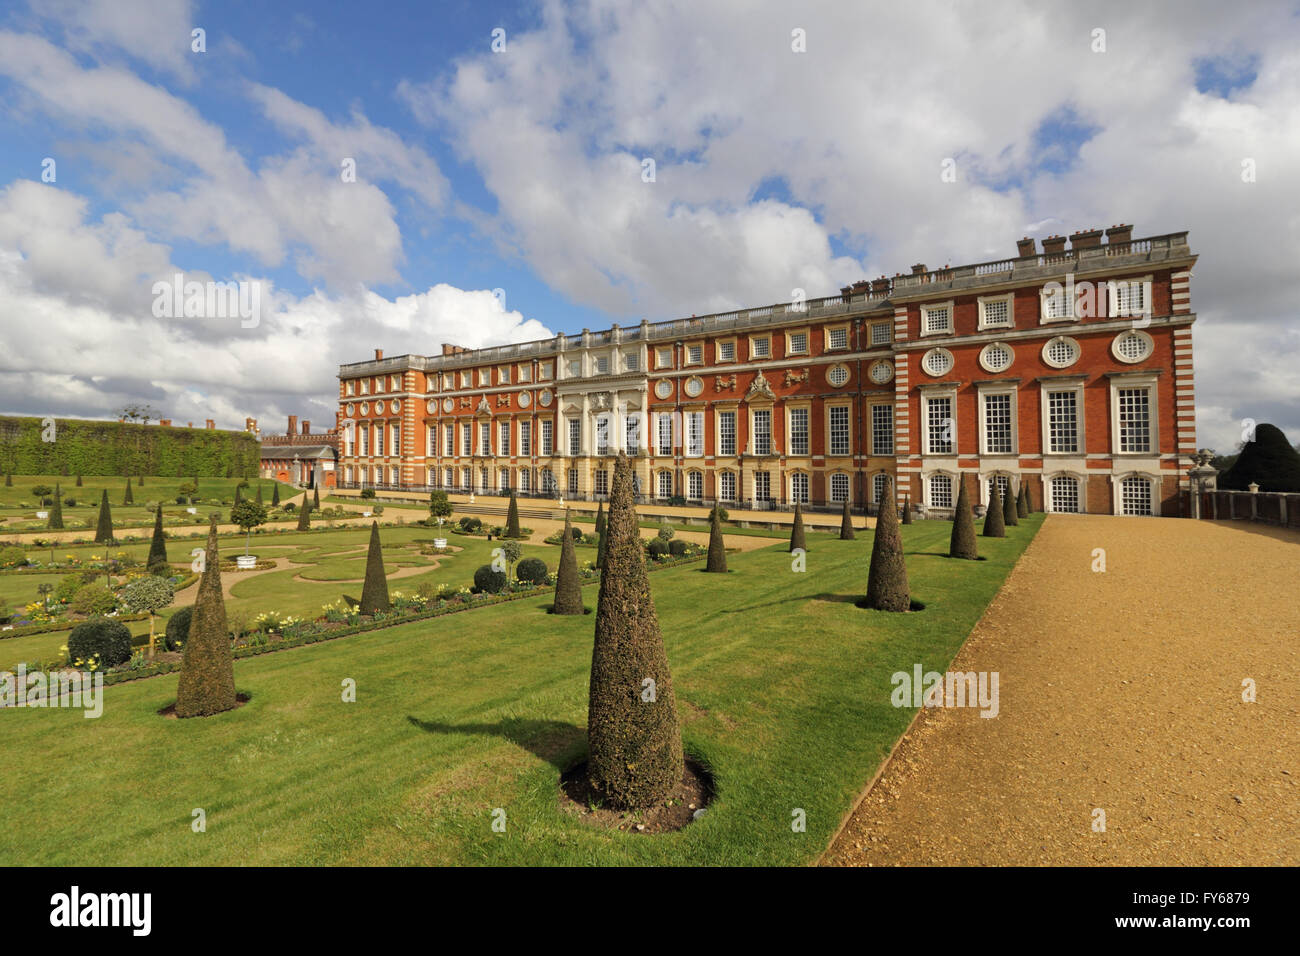 Hampton Court Palace, London, UK. 23rd April 2016. The beautifully designed privy garden and the southern facade - Stock Image